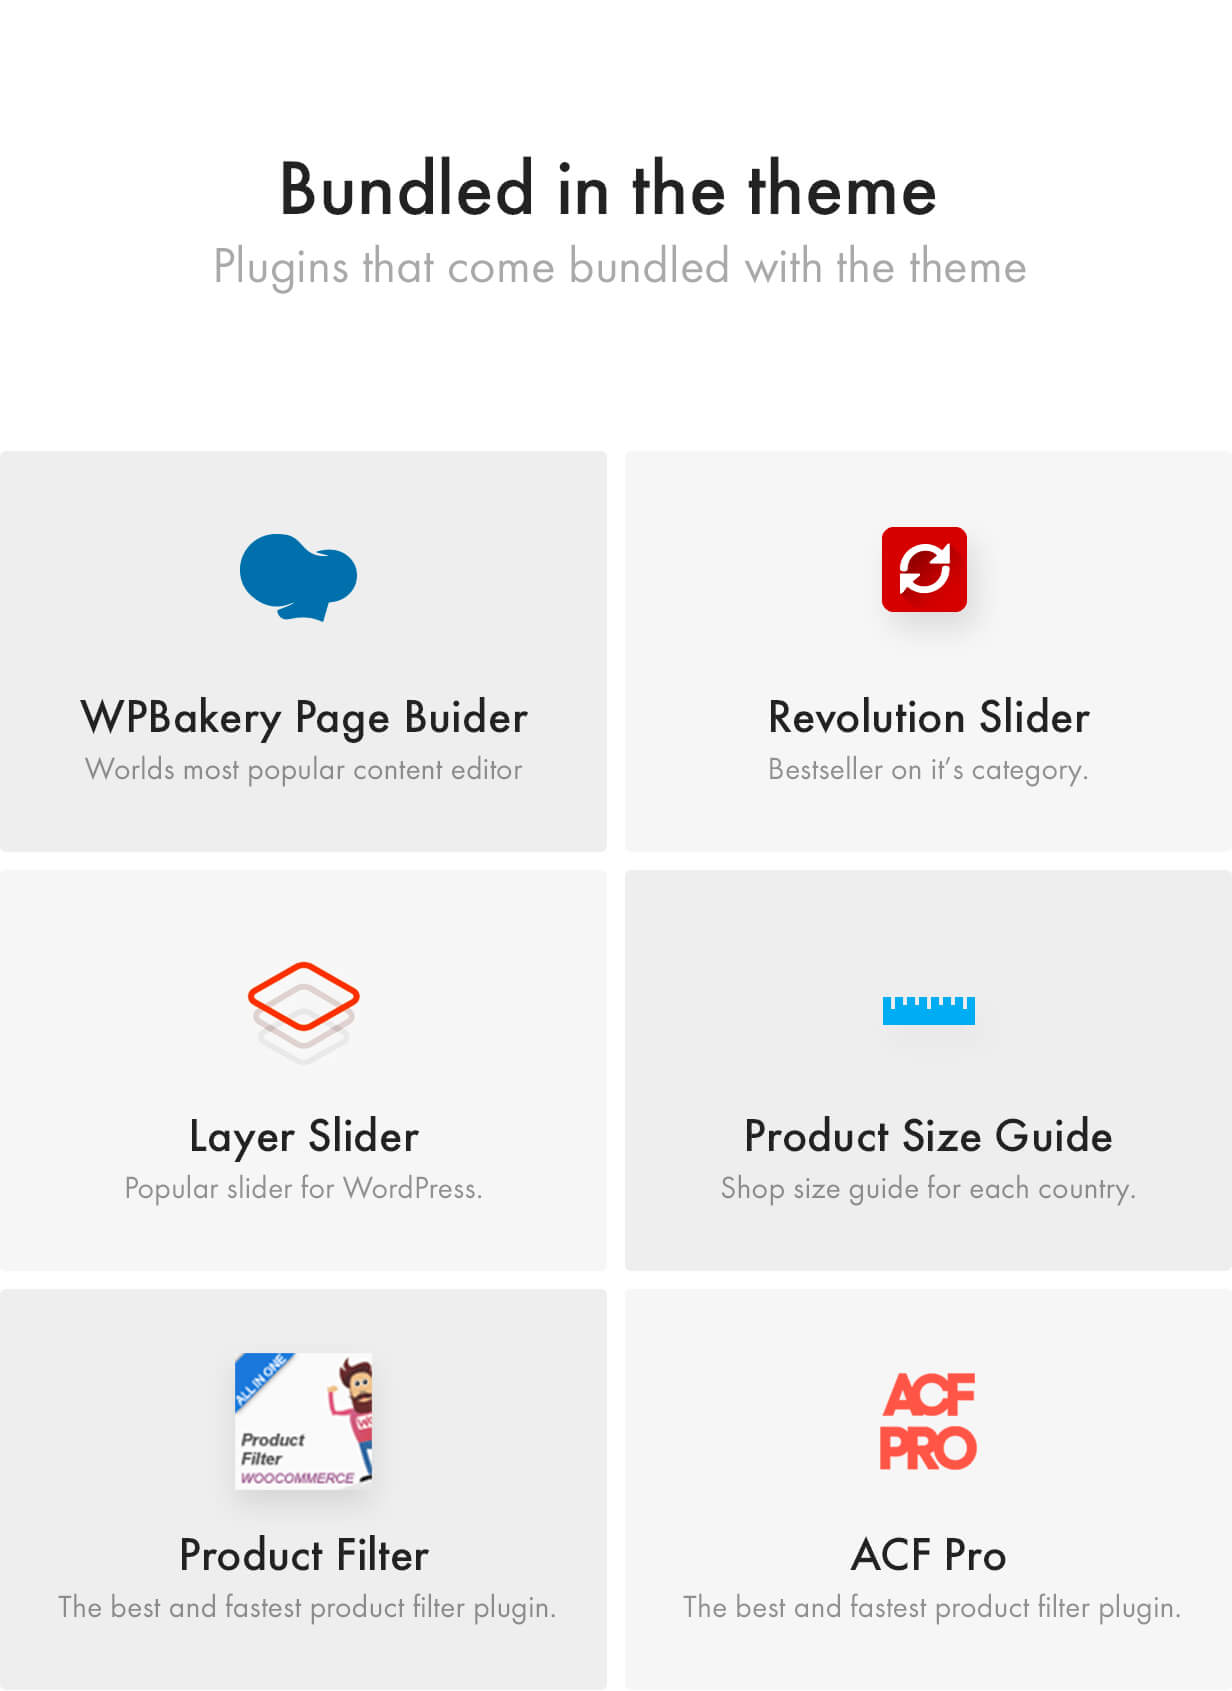 Premium Plugins included, WPBakery Page Builder, Revolution Slider, Layer Slider, Avada, Advanced Custom Fields PRO, Product Size Guide, WooCommerce Size Guide